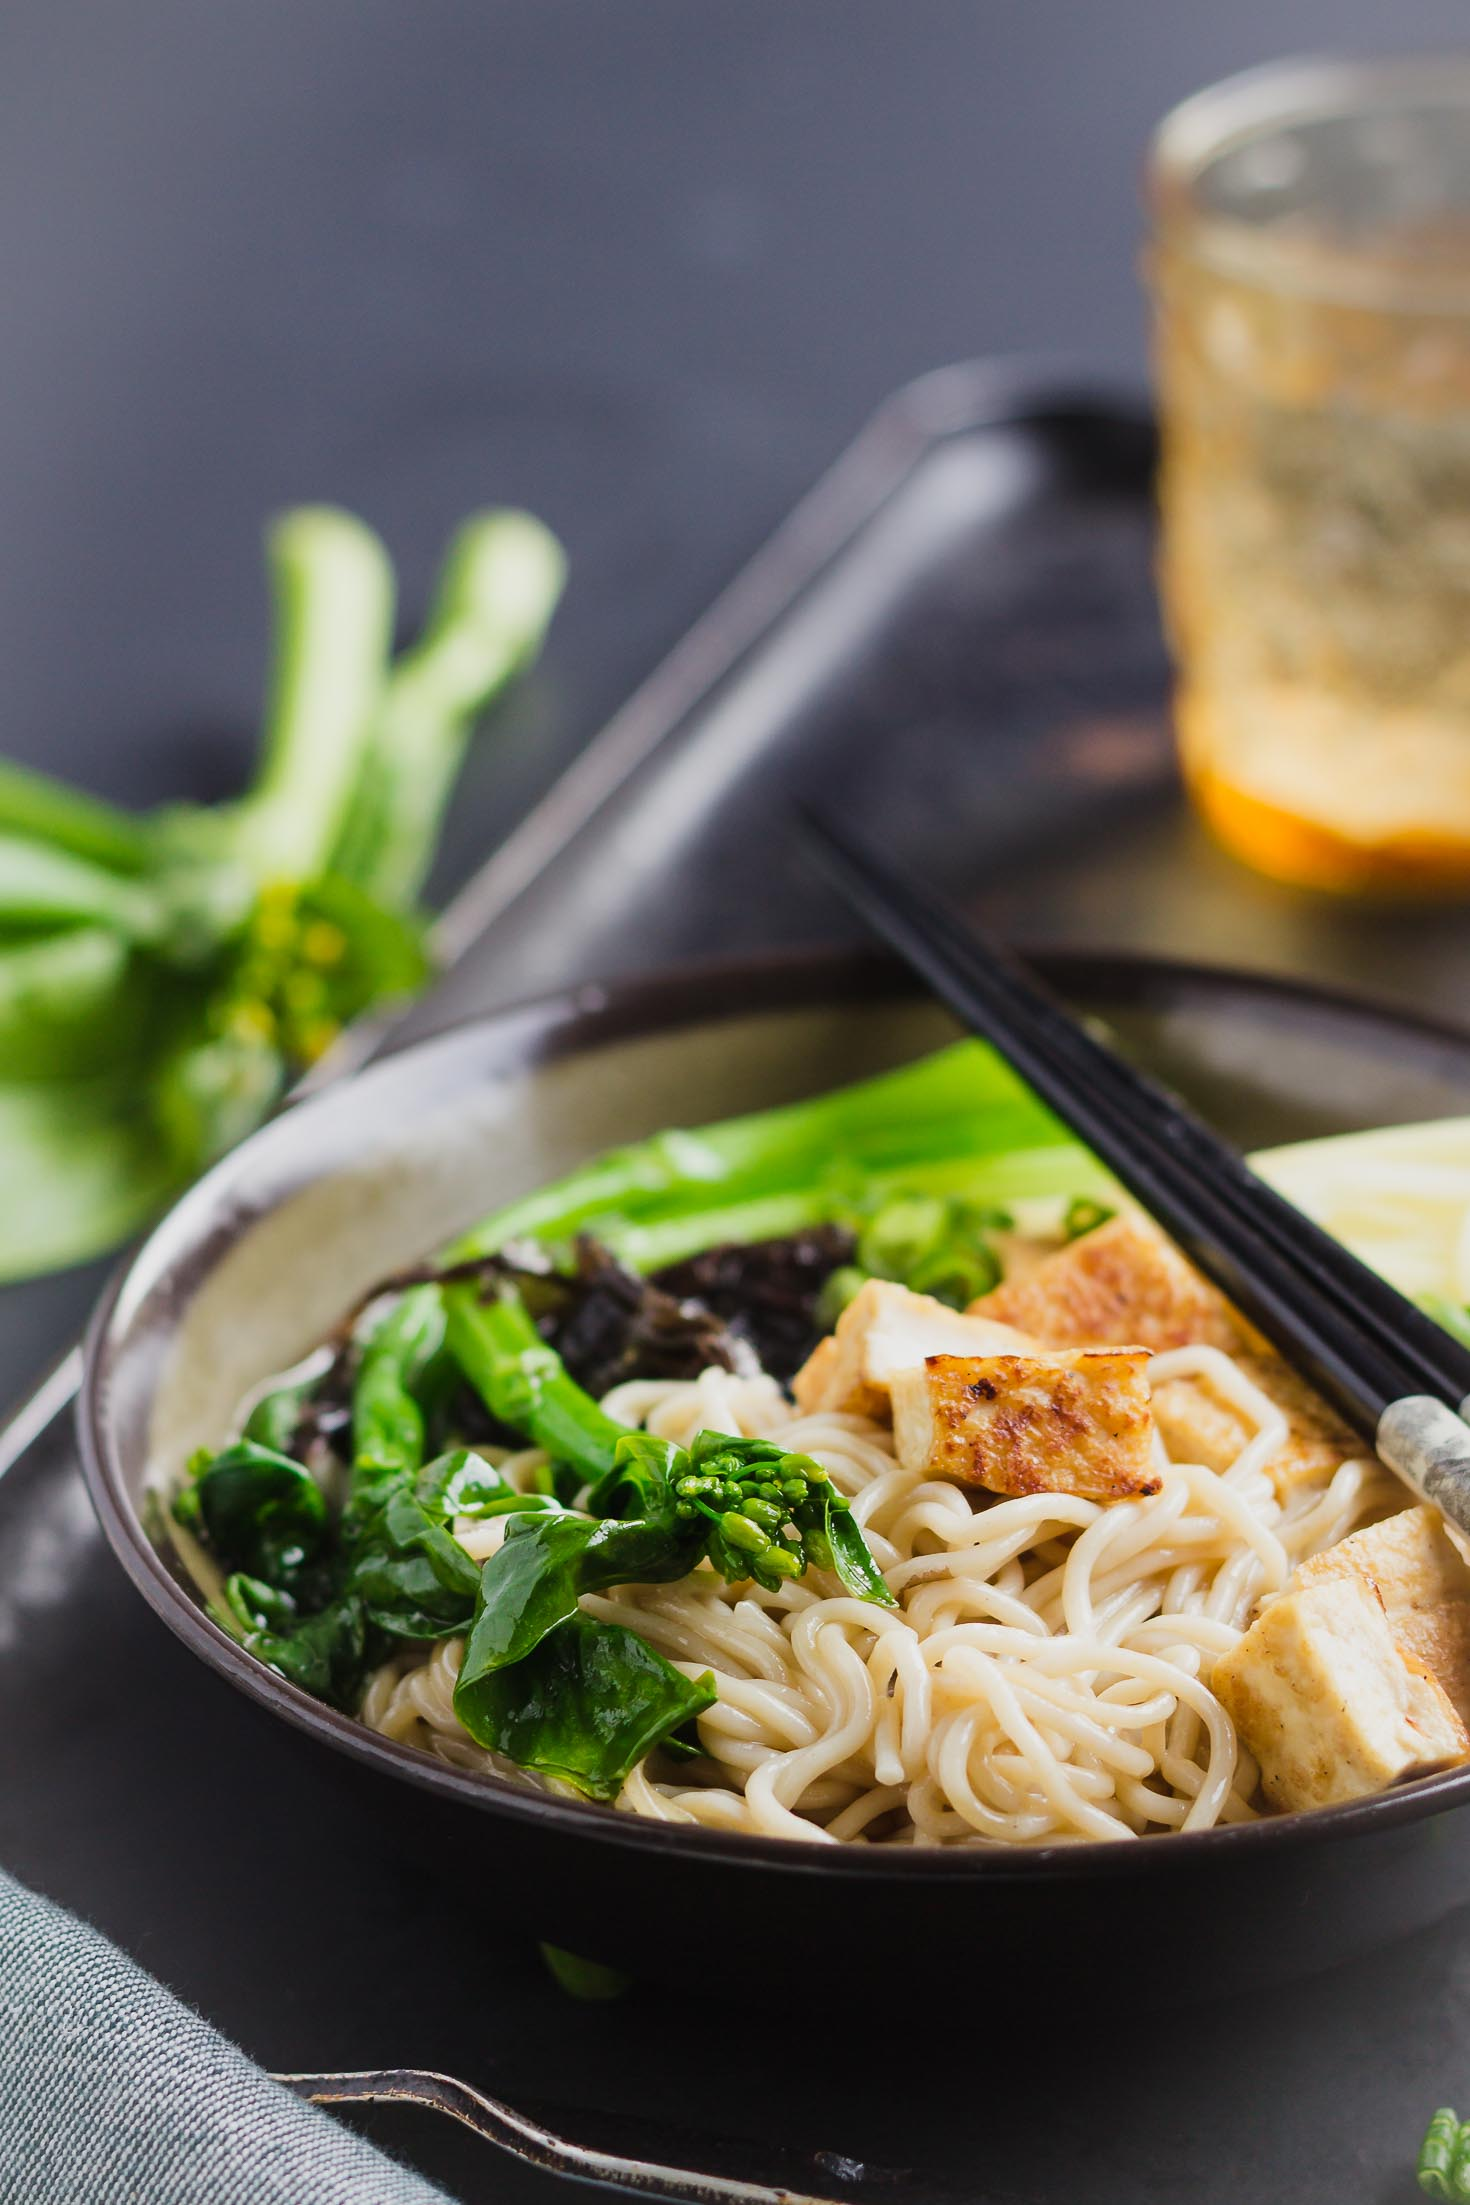 One-Pot Miso Tofu Gluten-free Ramen-front view-in a bowl with green vegetables